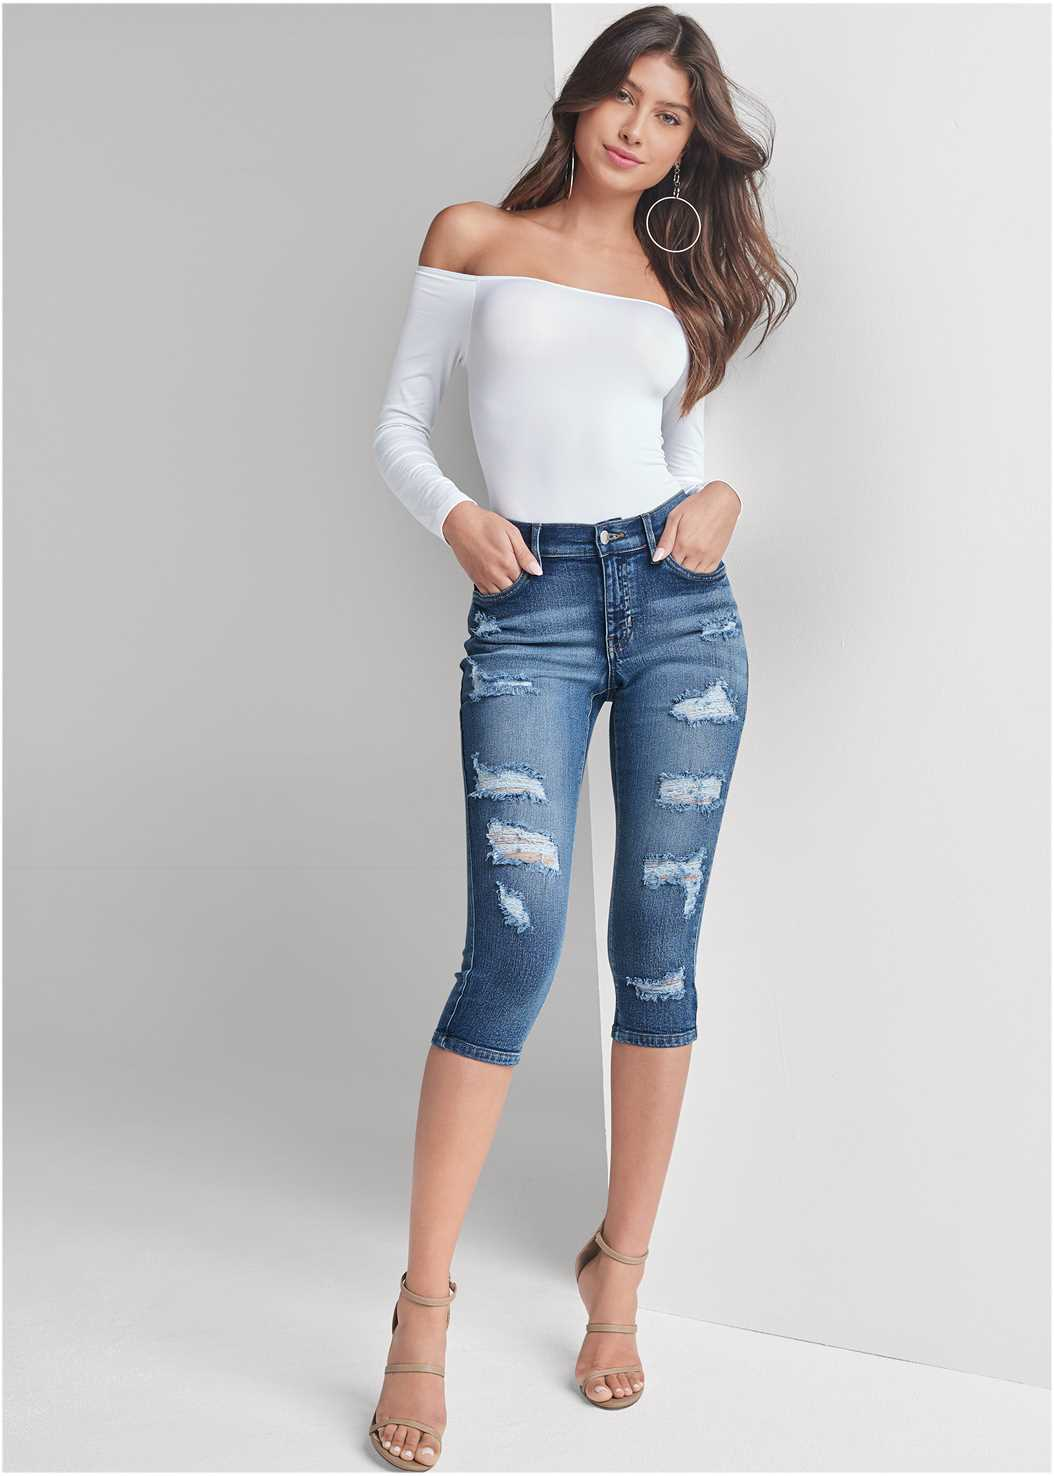 Ripped Capri Jeans,Off The Shoulder Top,High Heel Strappy Sandals